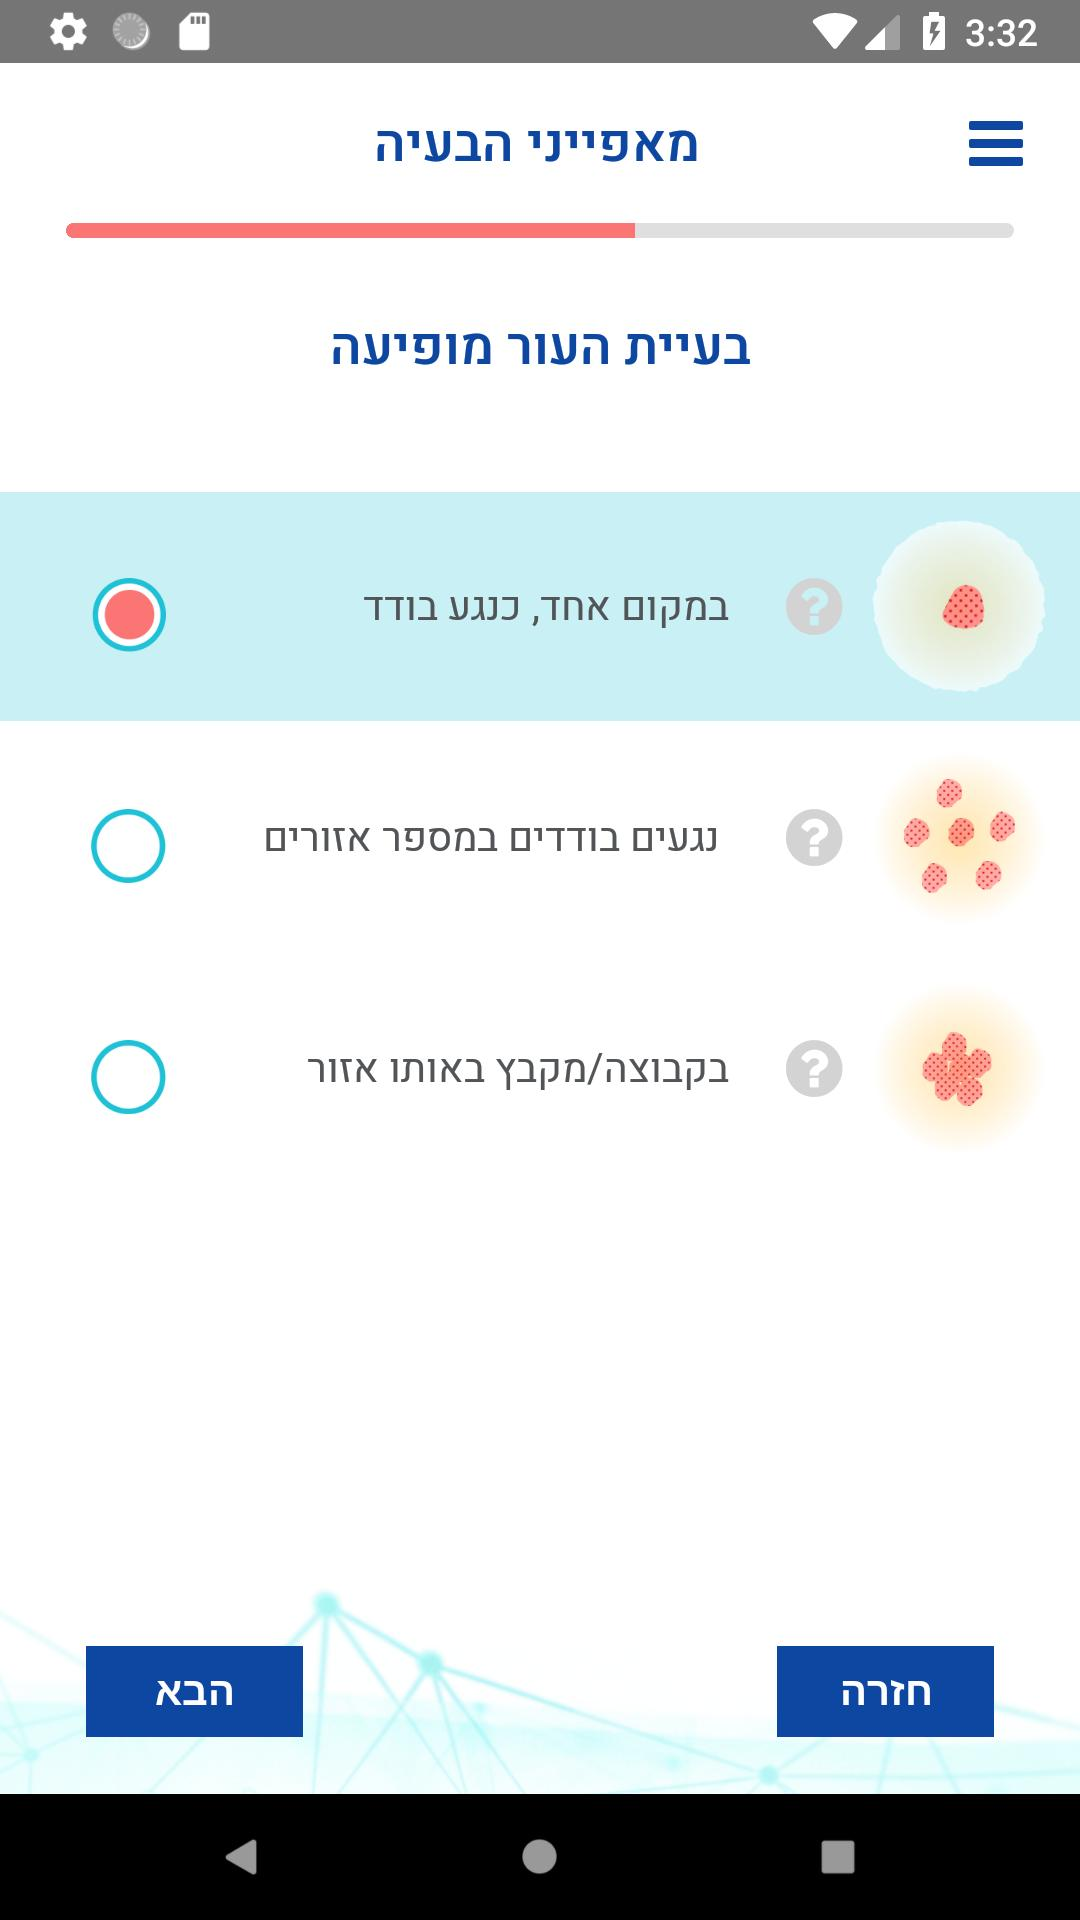 Maccabi Online Dermatologist for Android - APK Download